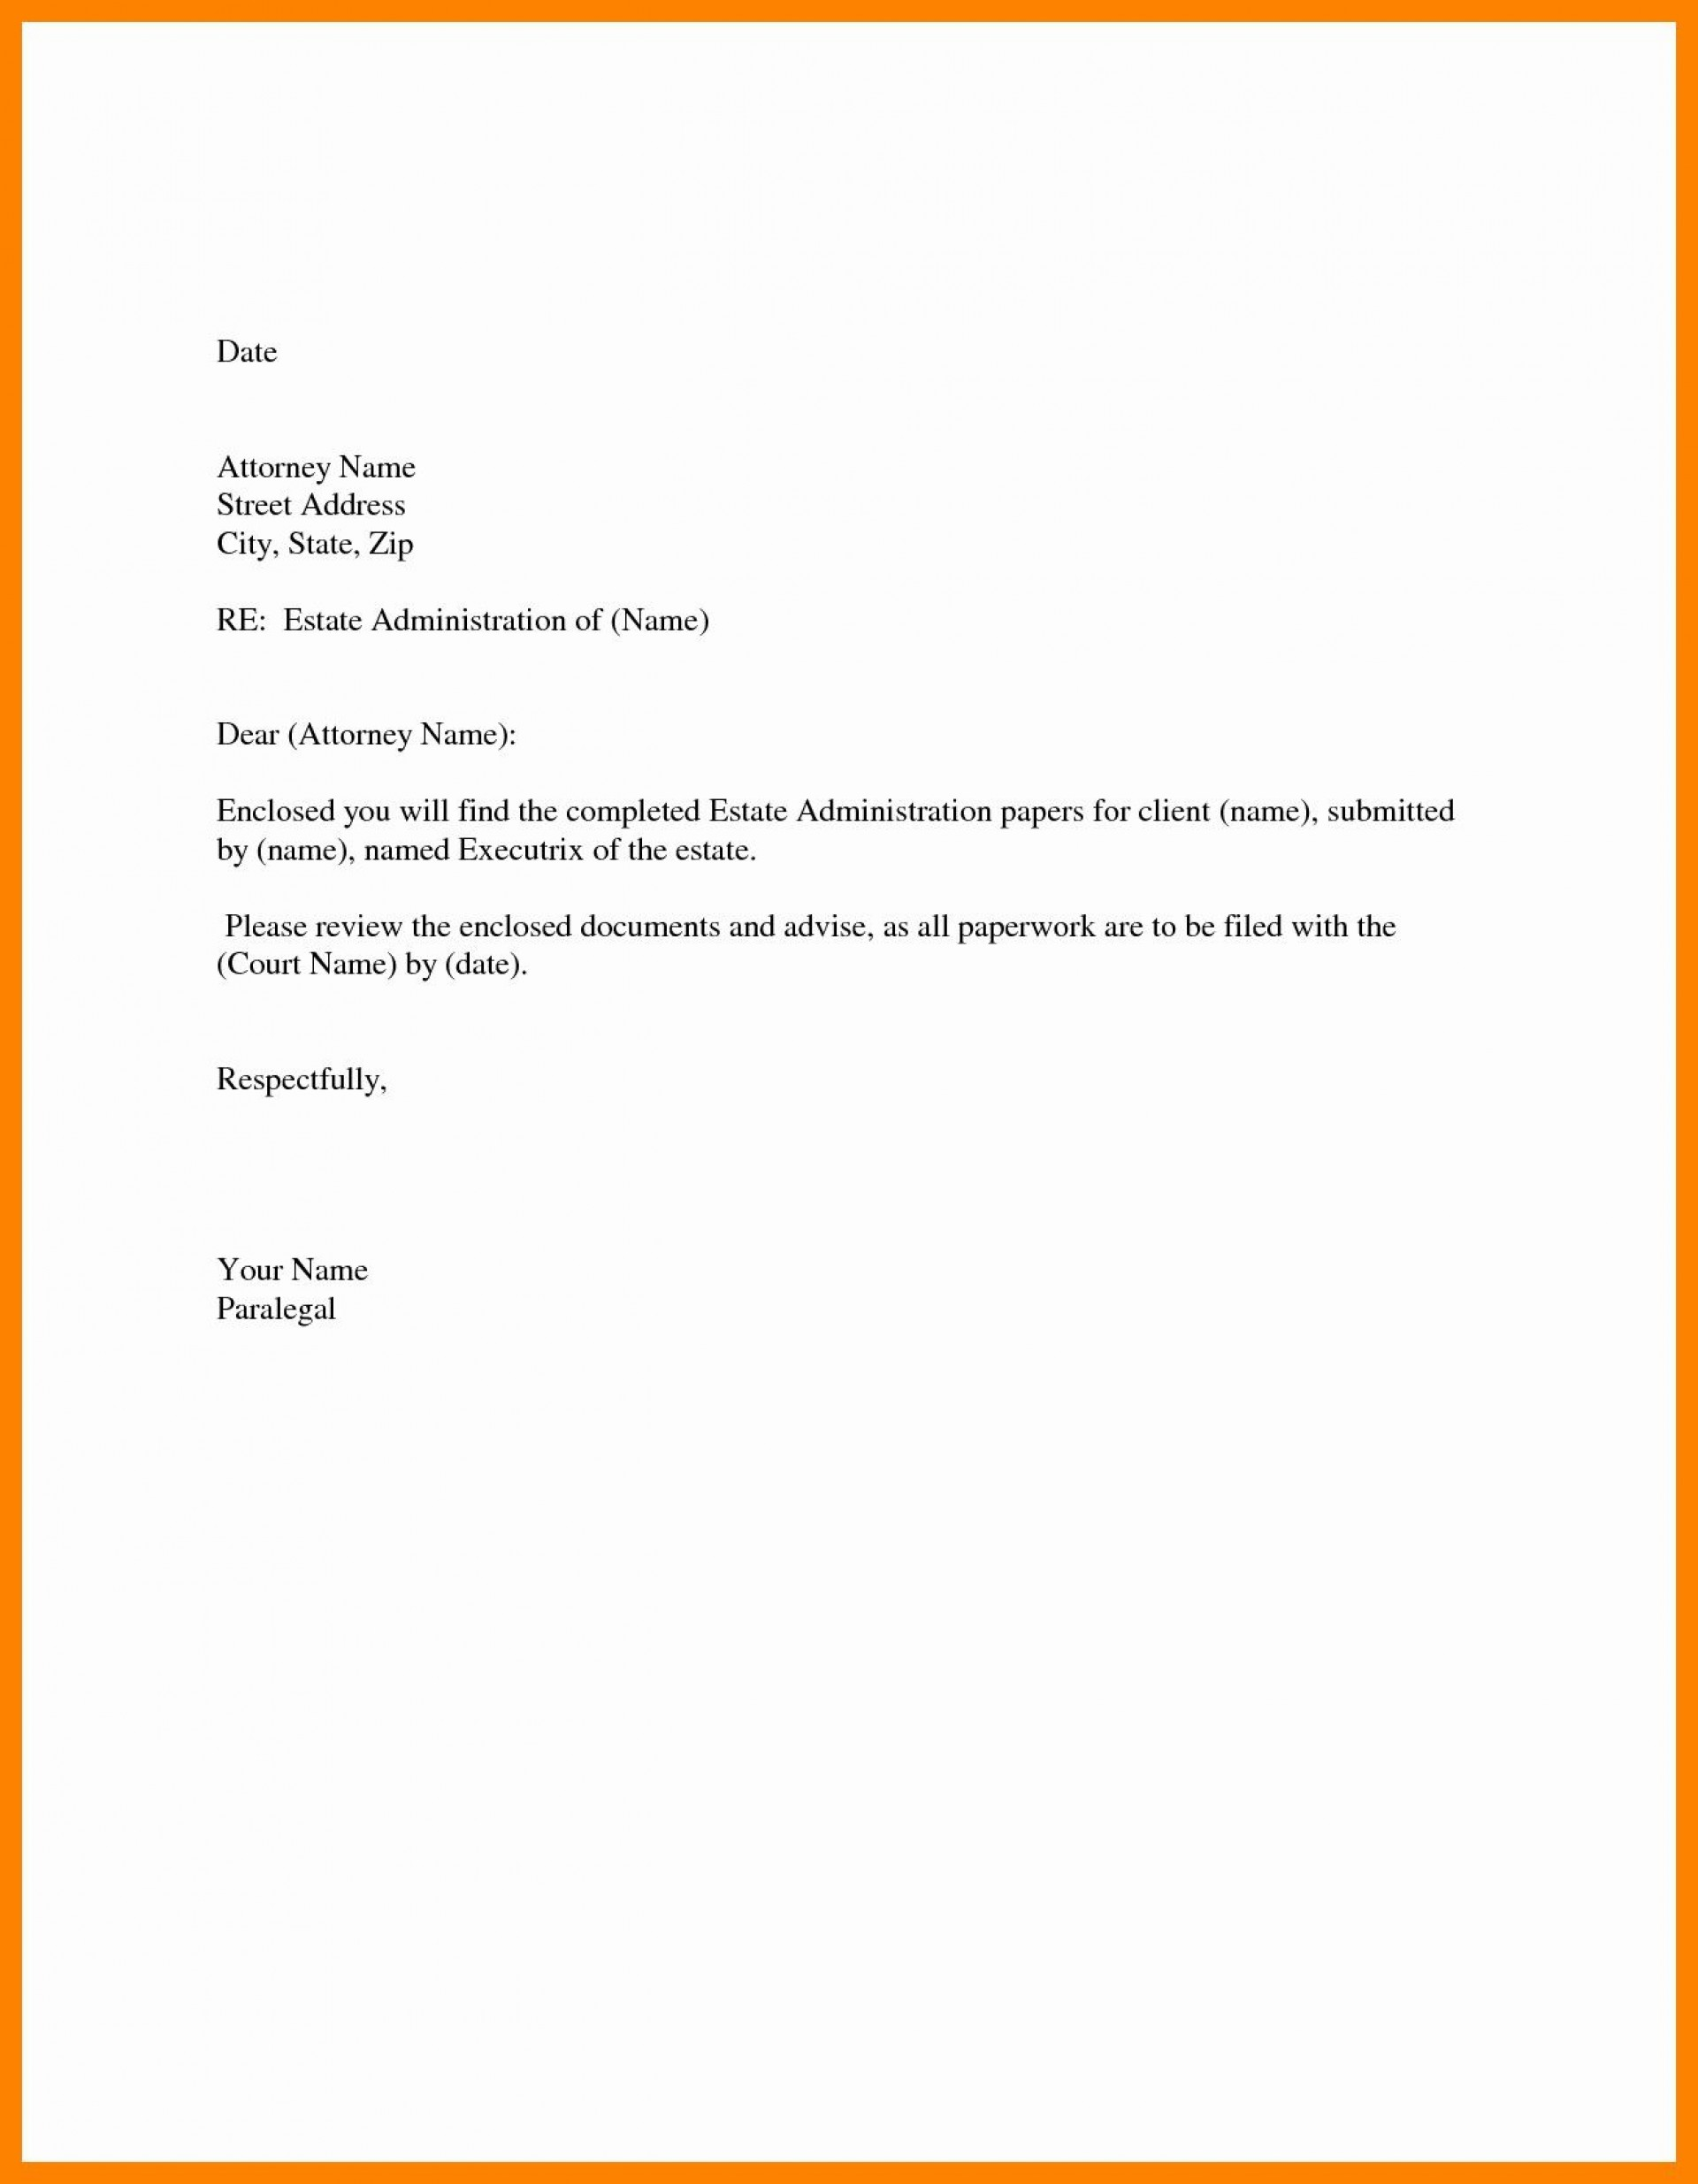 009 Fascinating Job Application Email Template High Def  Formal For Example Opportunitie Subject1920